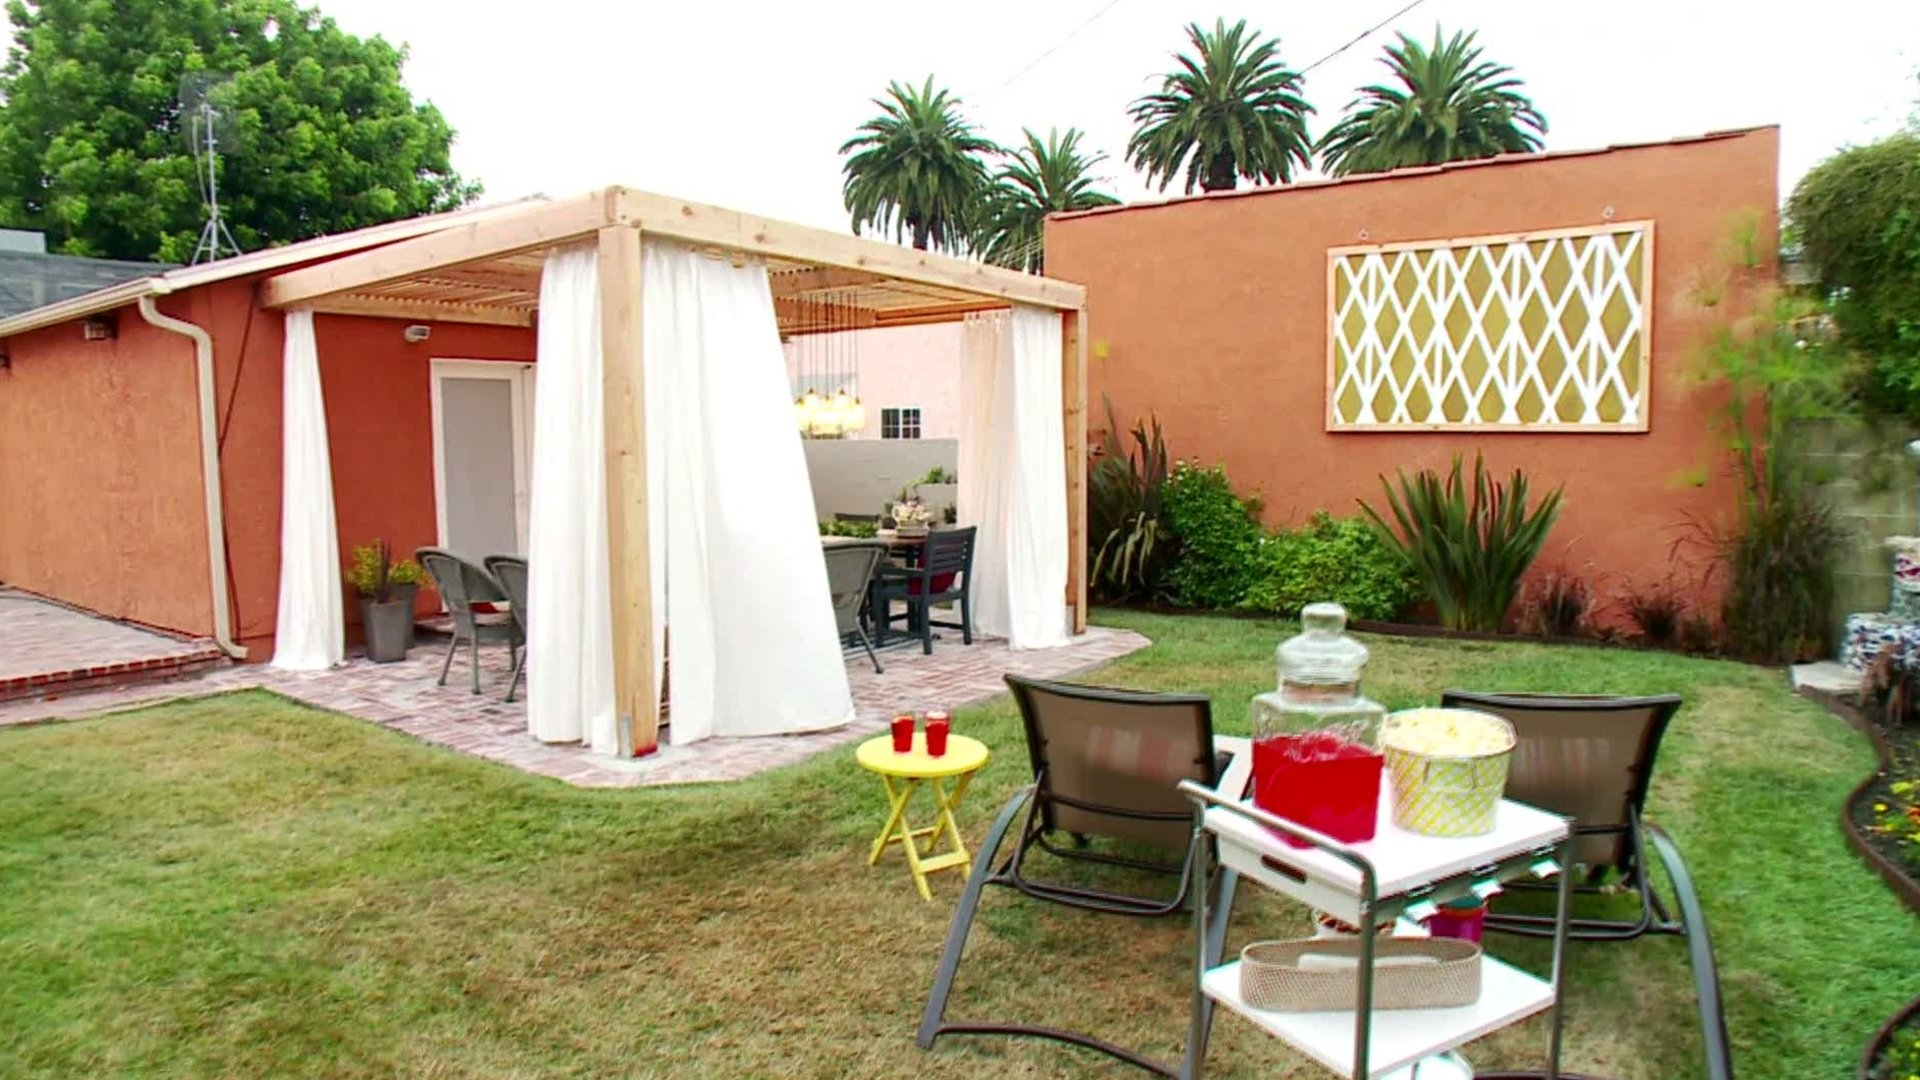 10 Lovable Backyard Design Ideas On A Budget 12 budget friendly backyards diy 1 2020